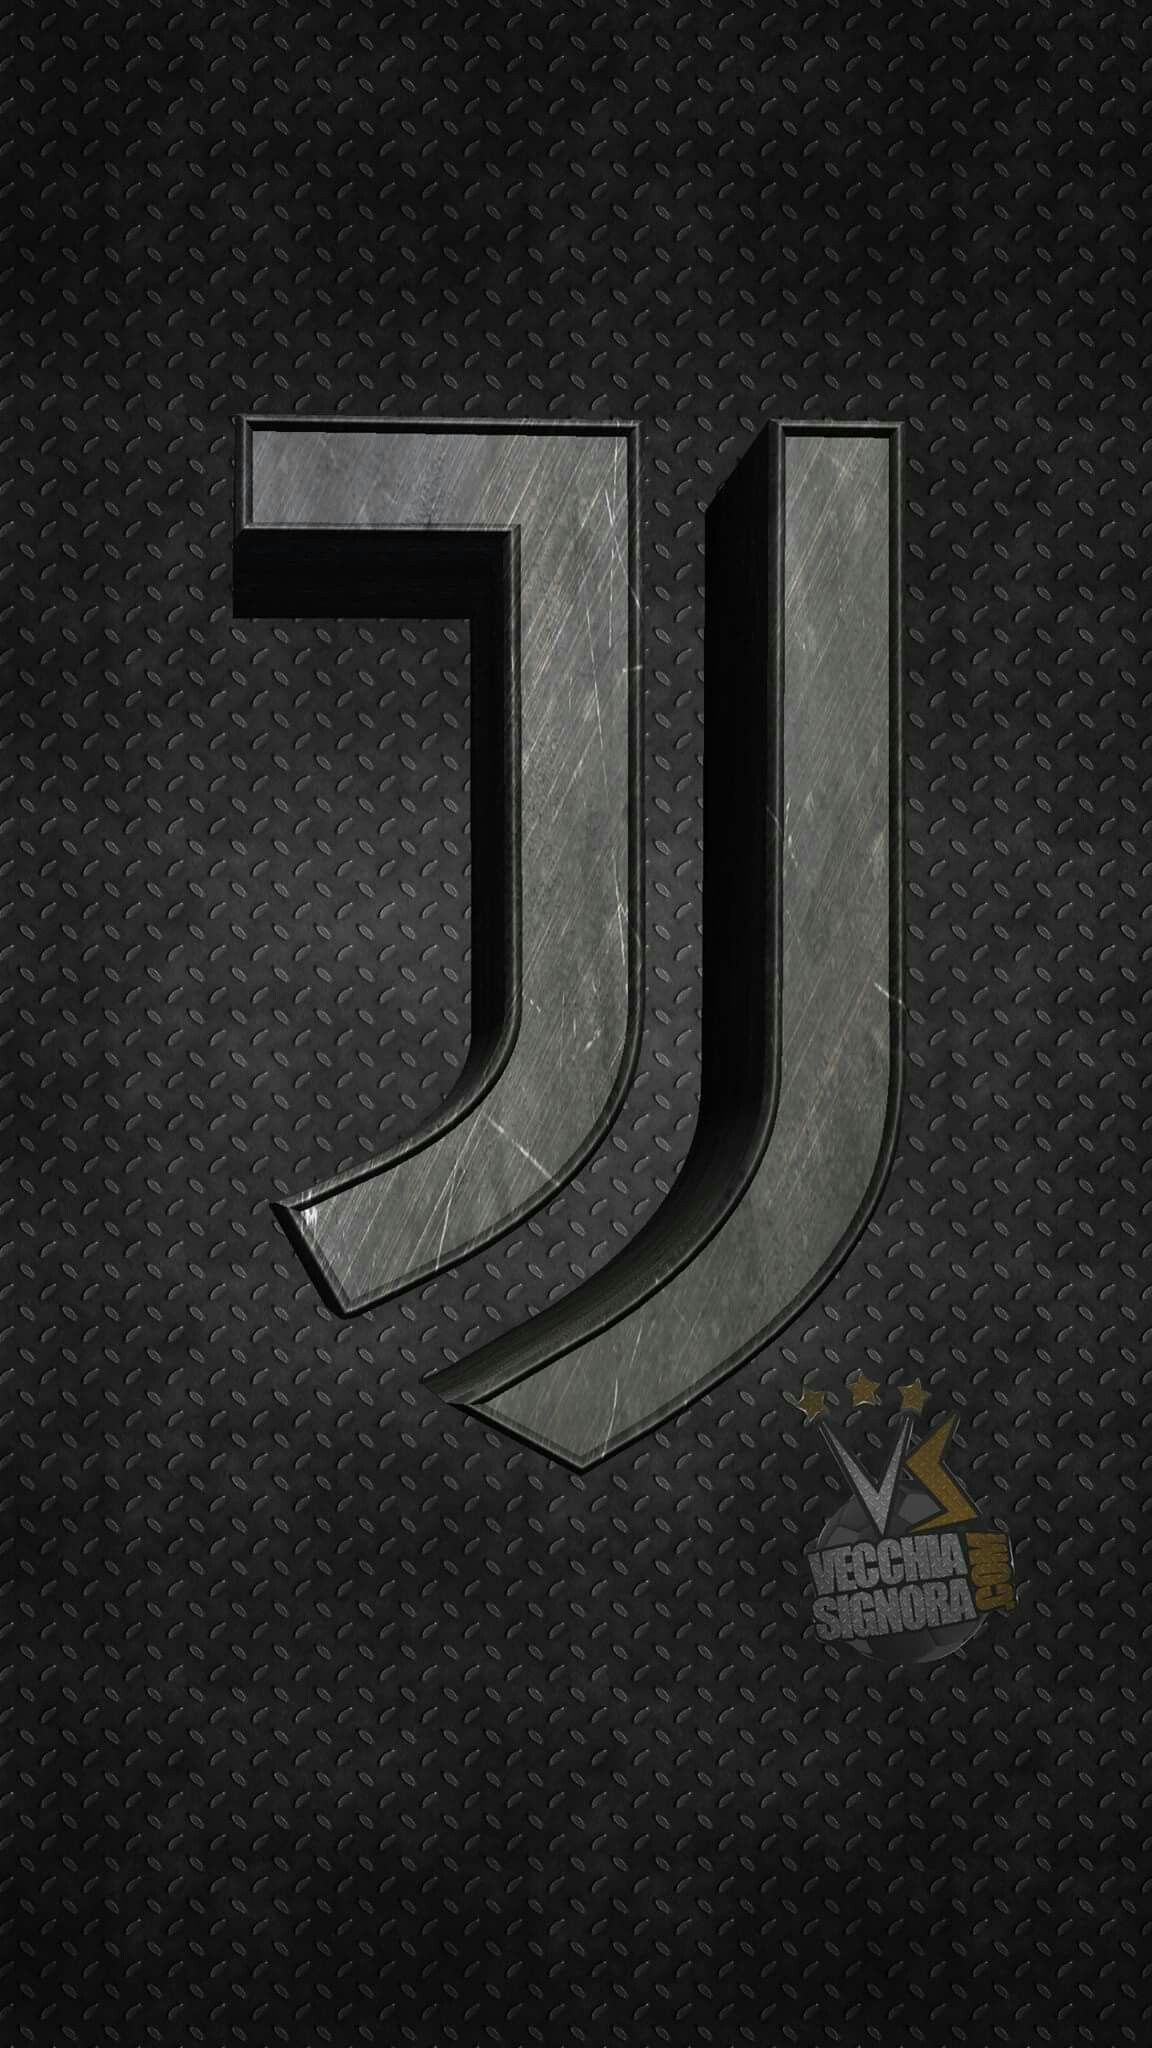 Pin by tommy tuharea on juventus pinterest juventus fc mobile phone wallpaper inspired by juventus fc rd kit voltagebd Image collections